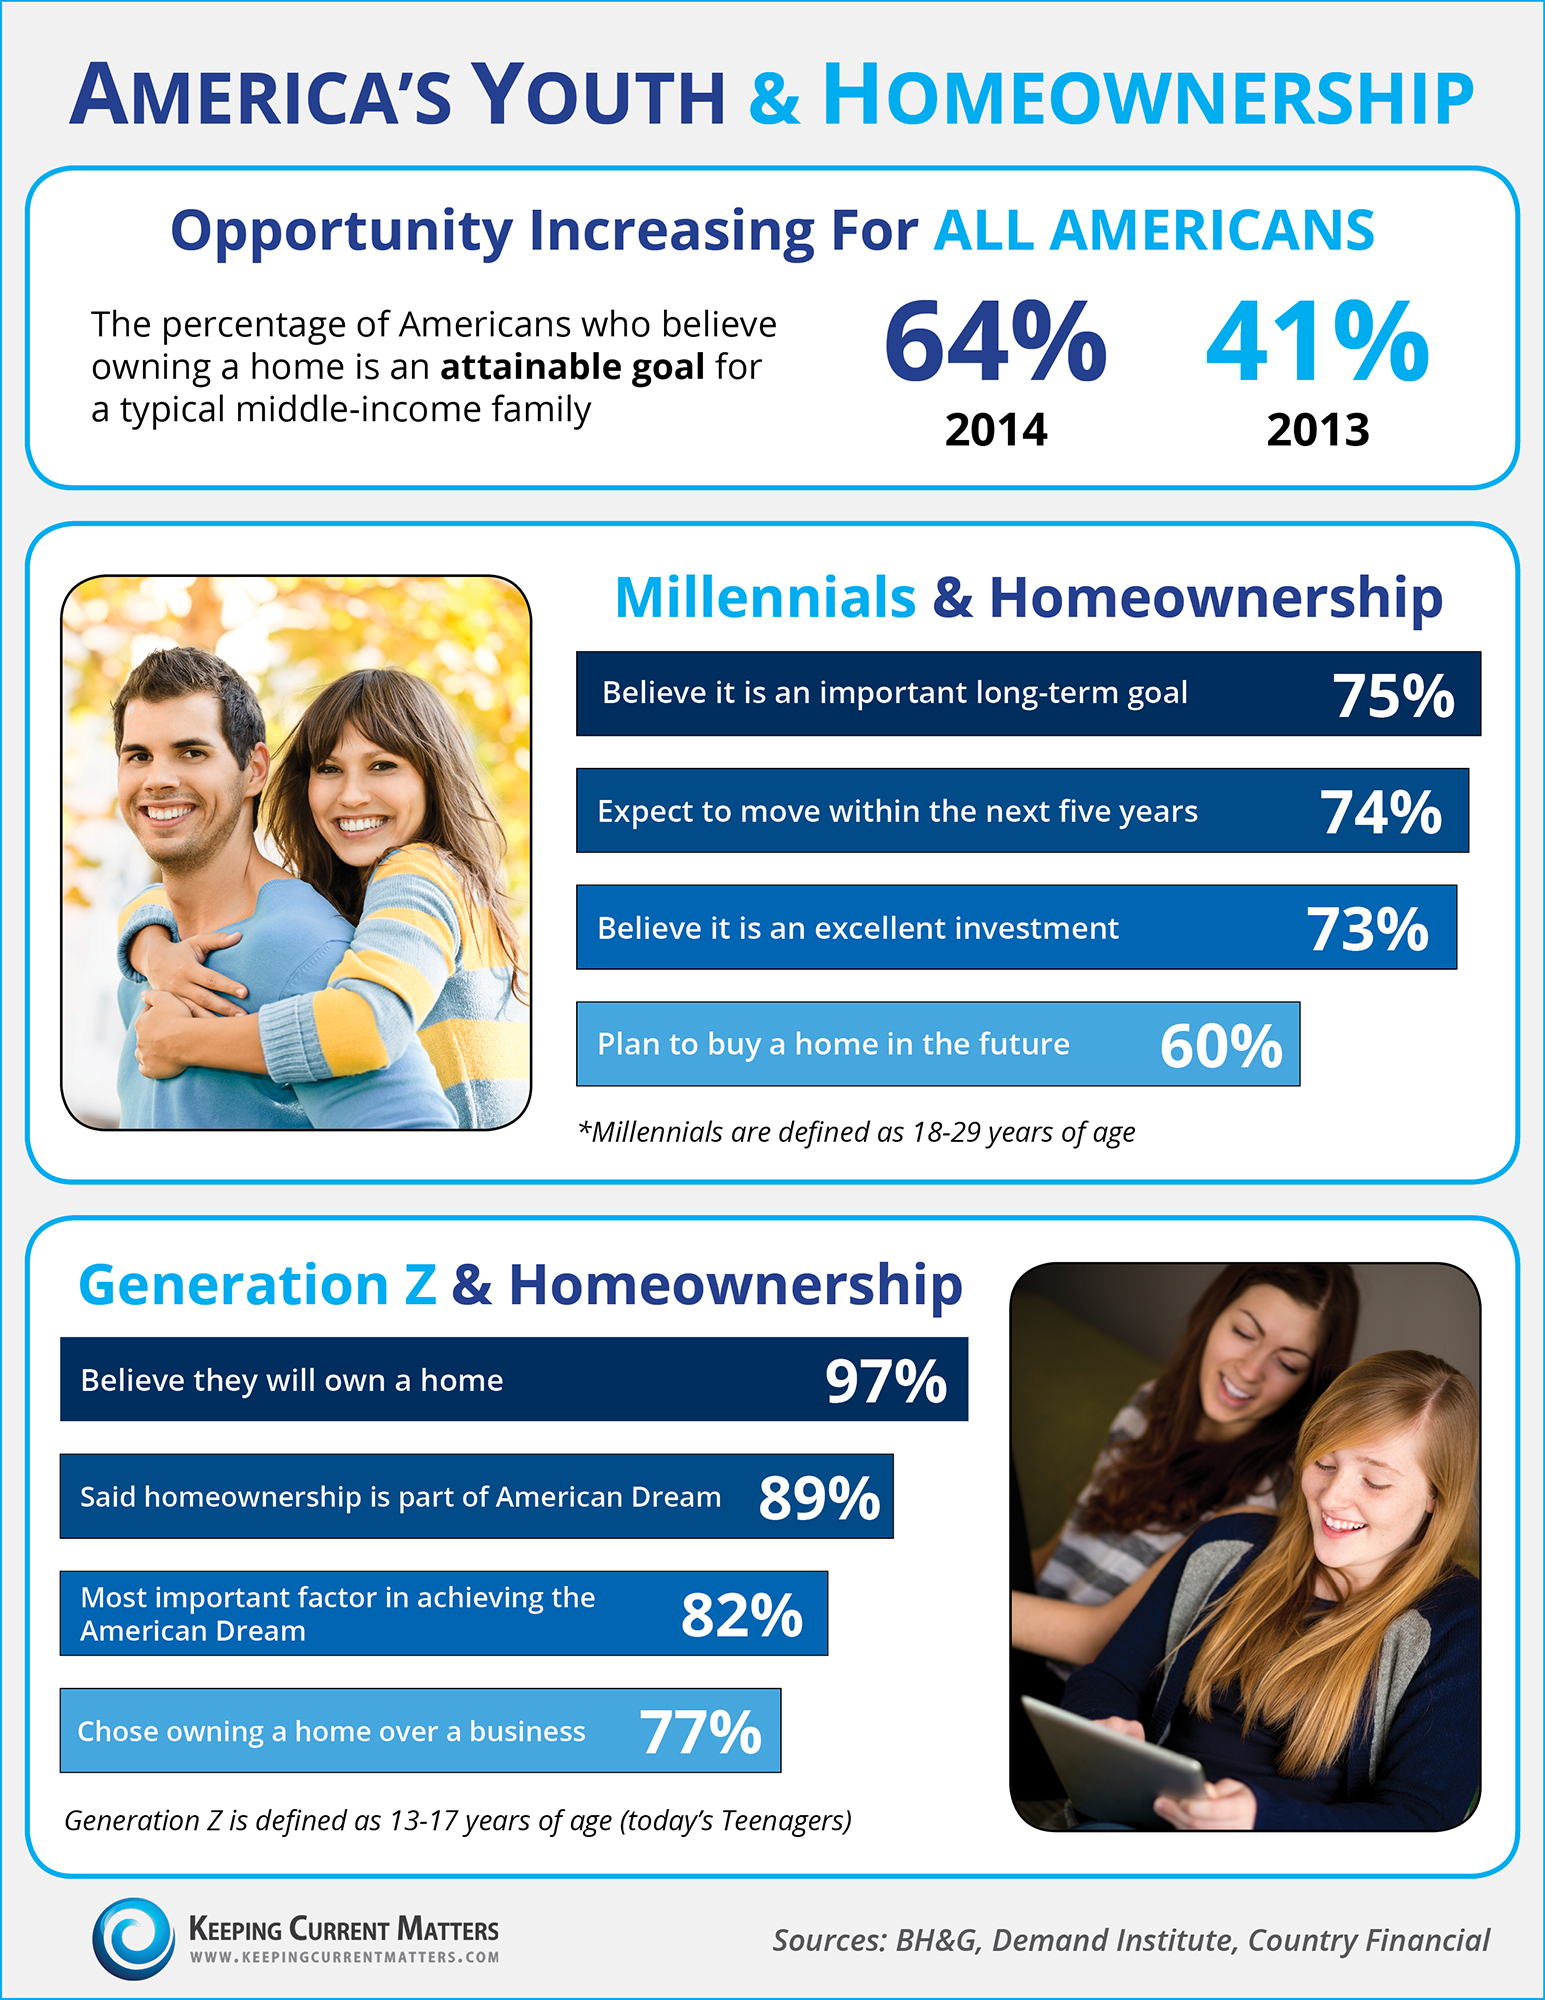 Millennials and Homeownership